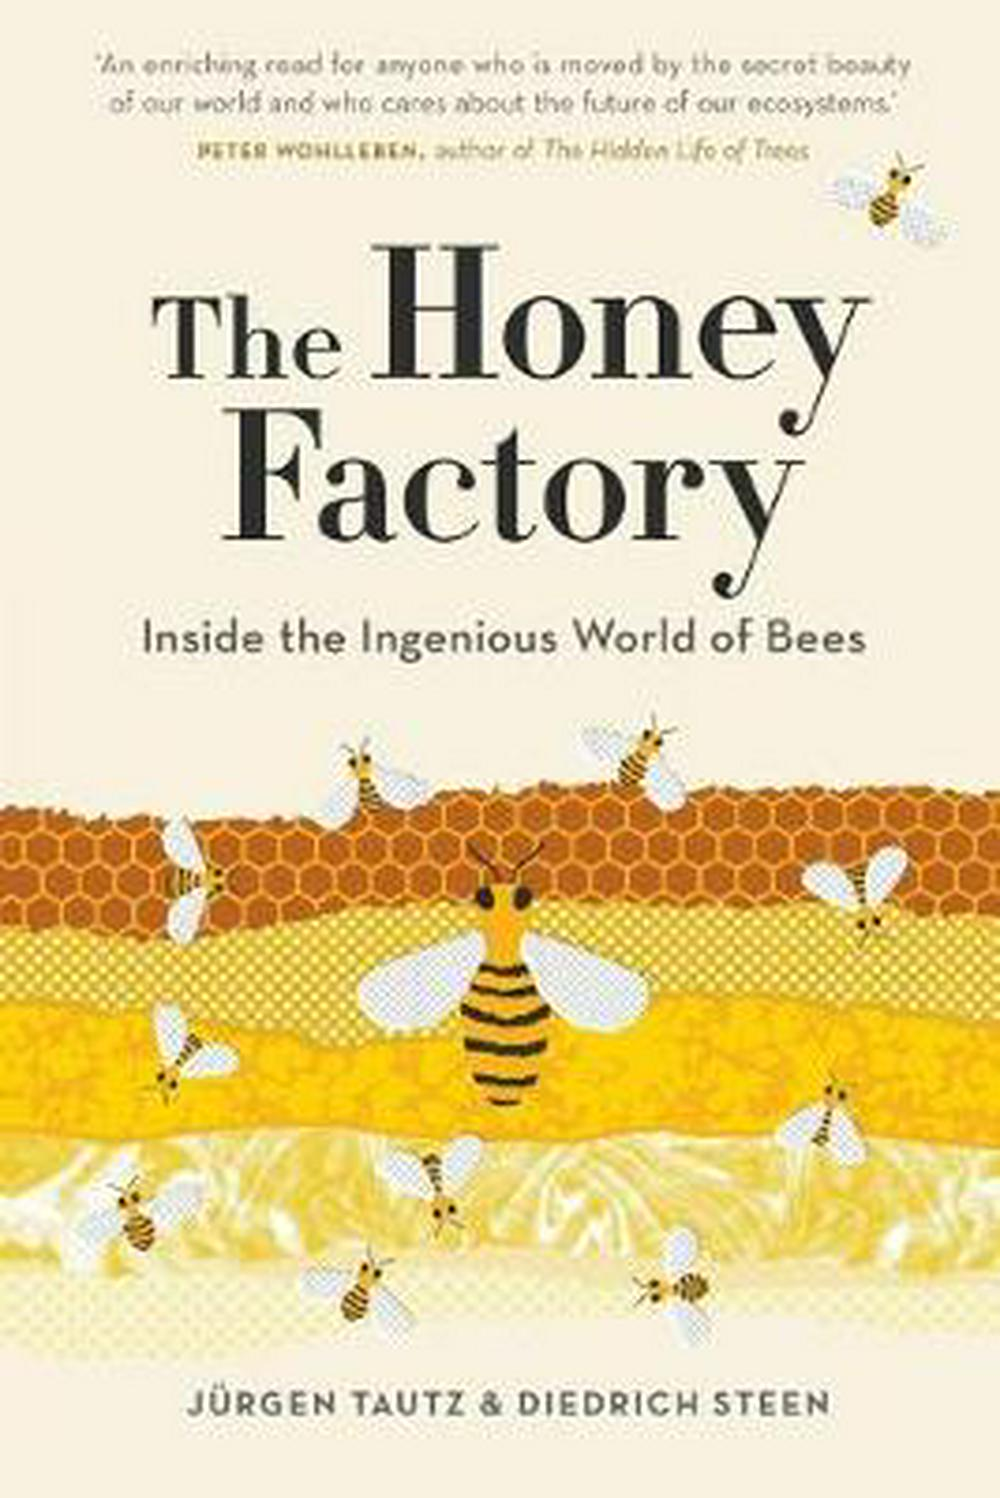 The Honey FactoryInside the Ingenious World of Bees by Jurgen Tautz, ISBN: 9781760640408